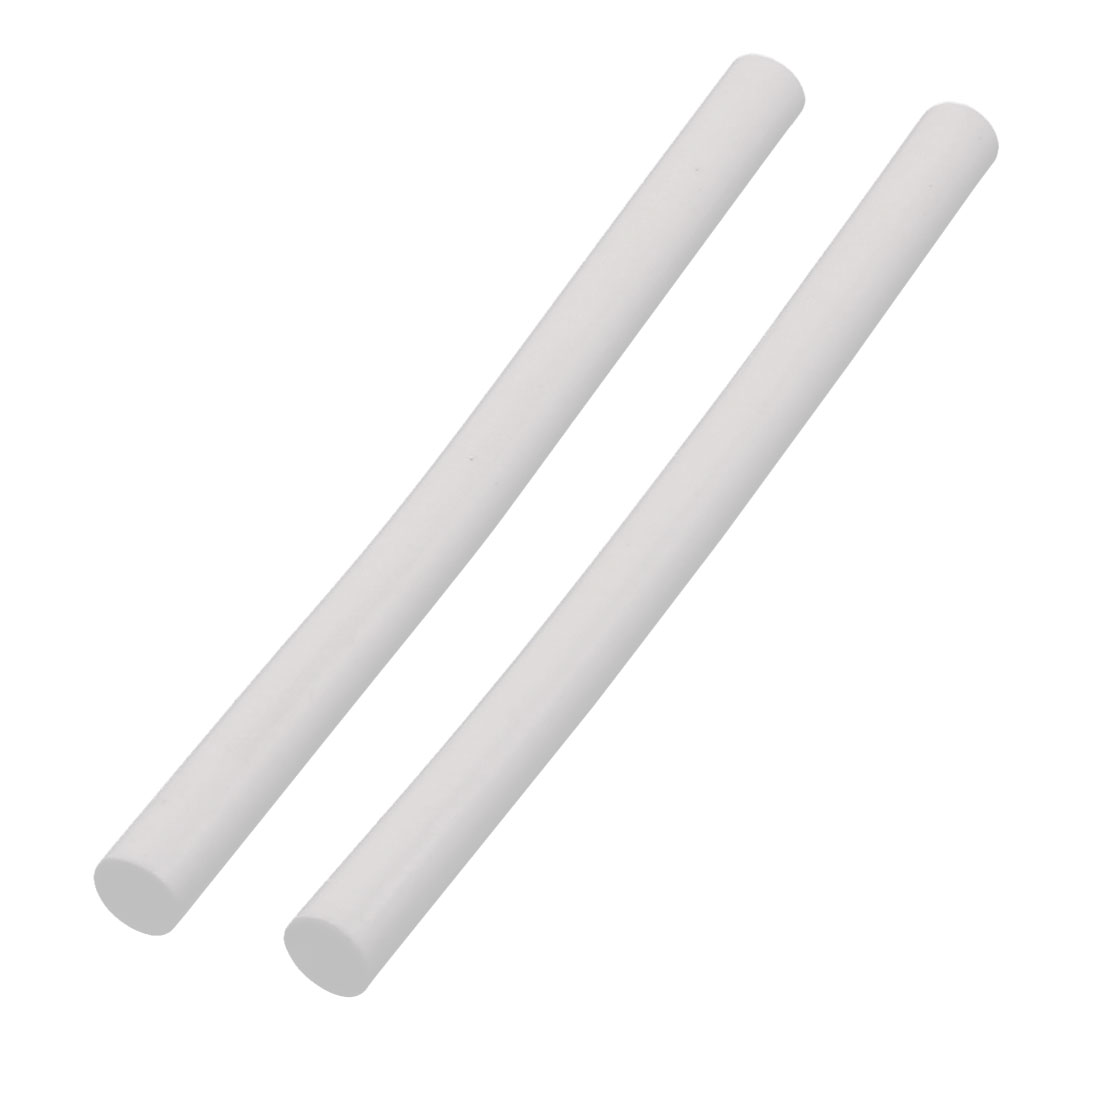 2pcs 7x100mm Ivory White Multi-Purpose Hot Melt Glue Sticks for Hot Melt Gun Glue